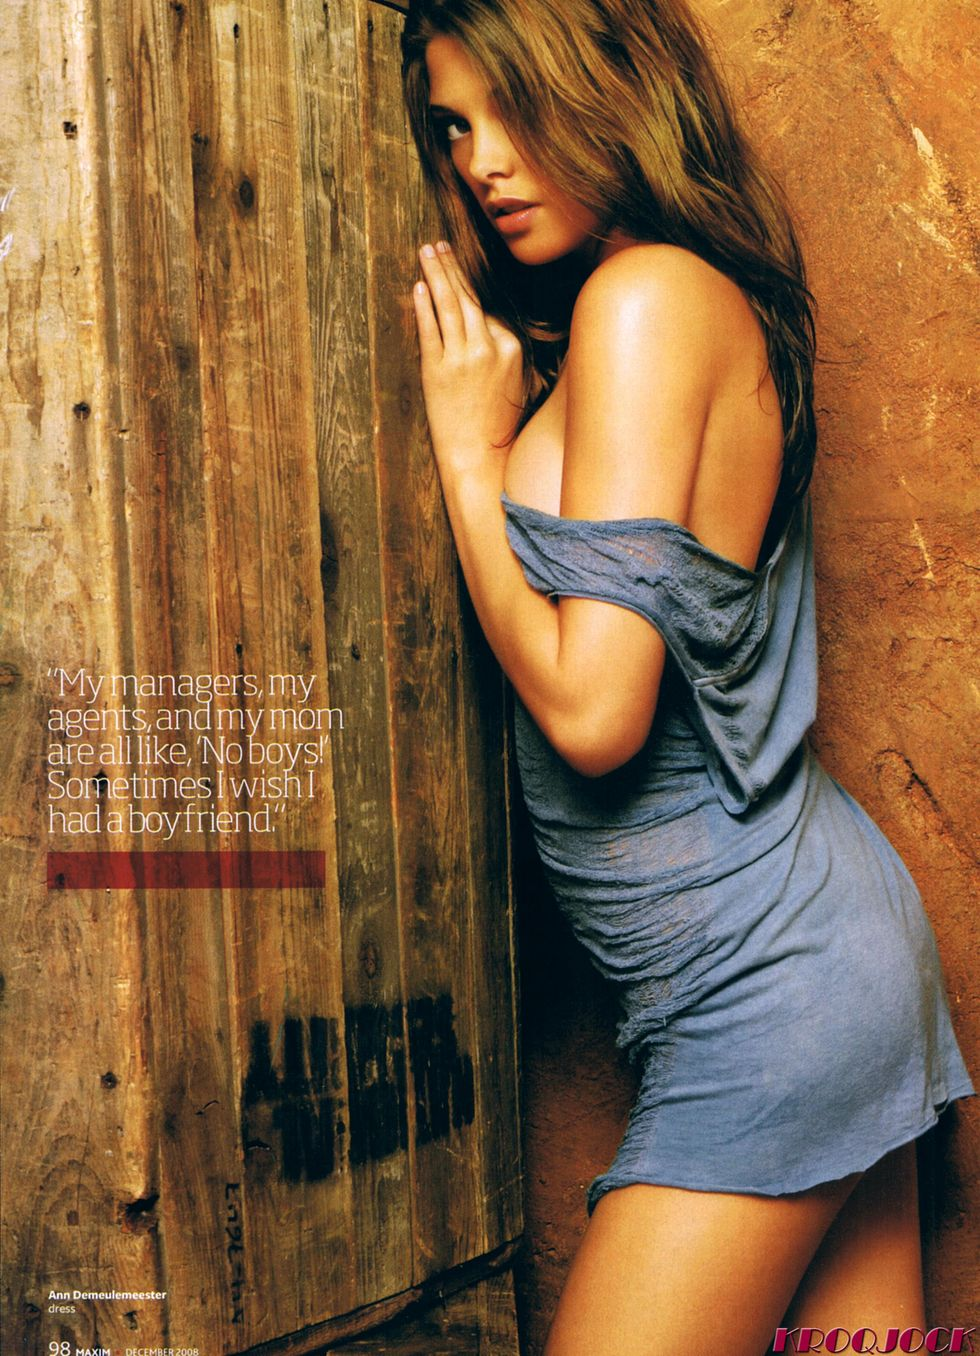 ashley-greene-maxim-magazine-december-2008-01